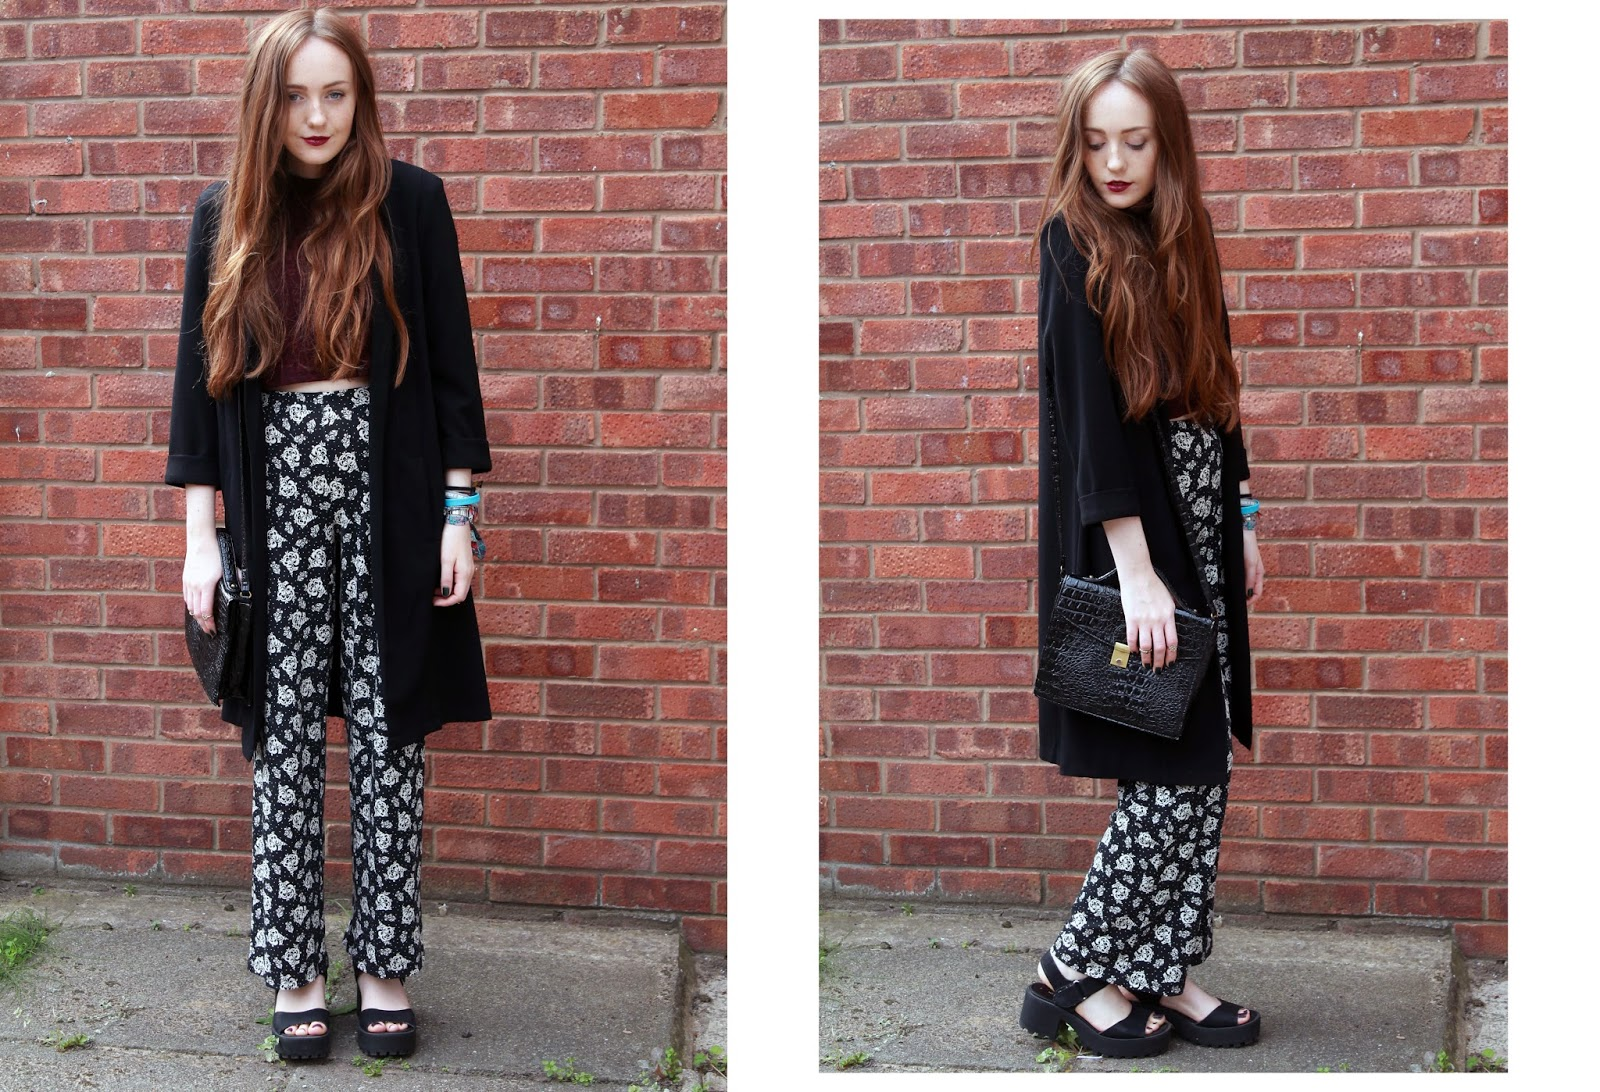 OOTD featuring forever 21 purple ribbed high neck crop top, primark black duster coat, floral flares, black cleated sole sandals and a primark satchel